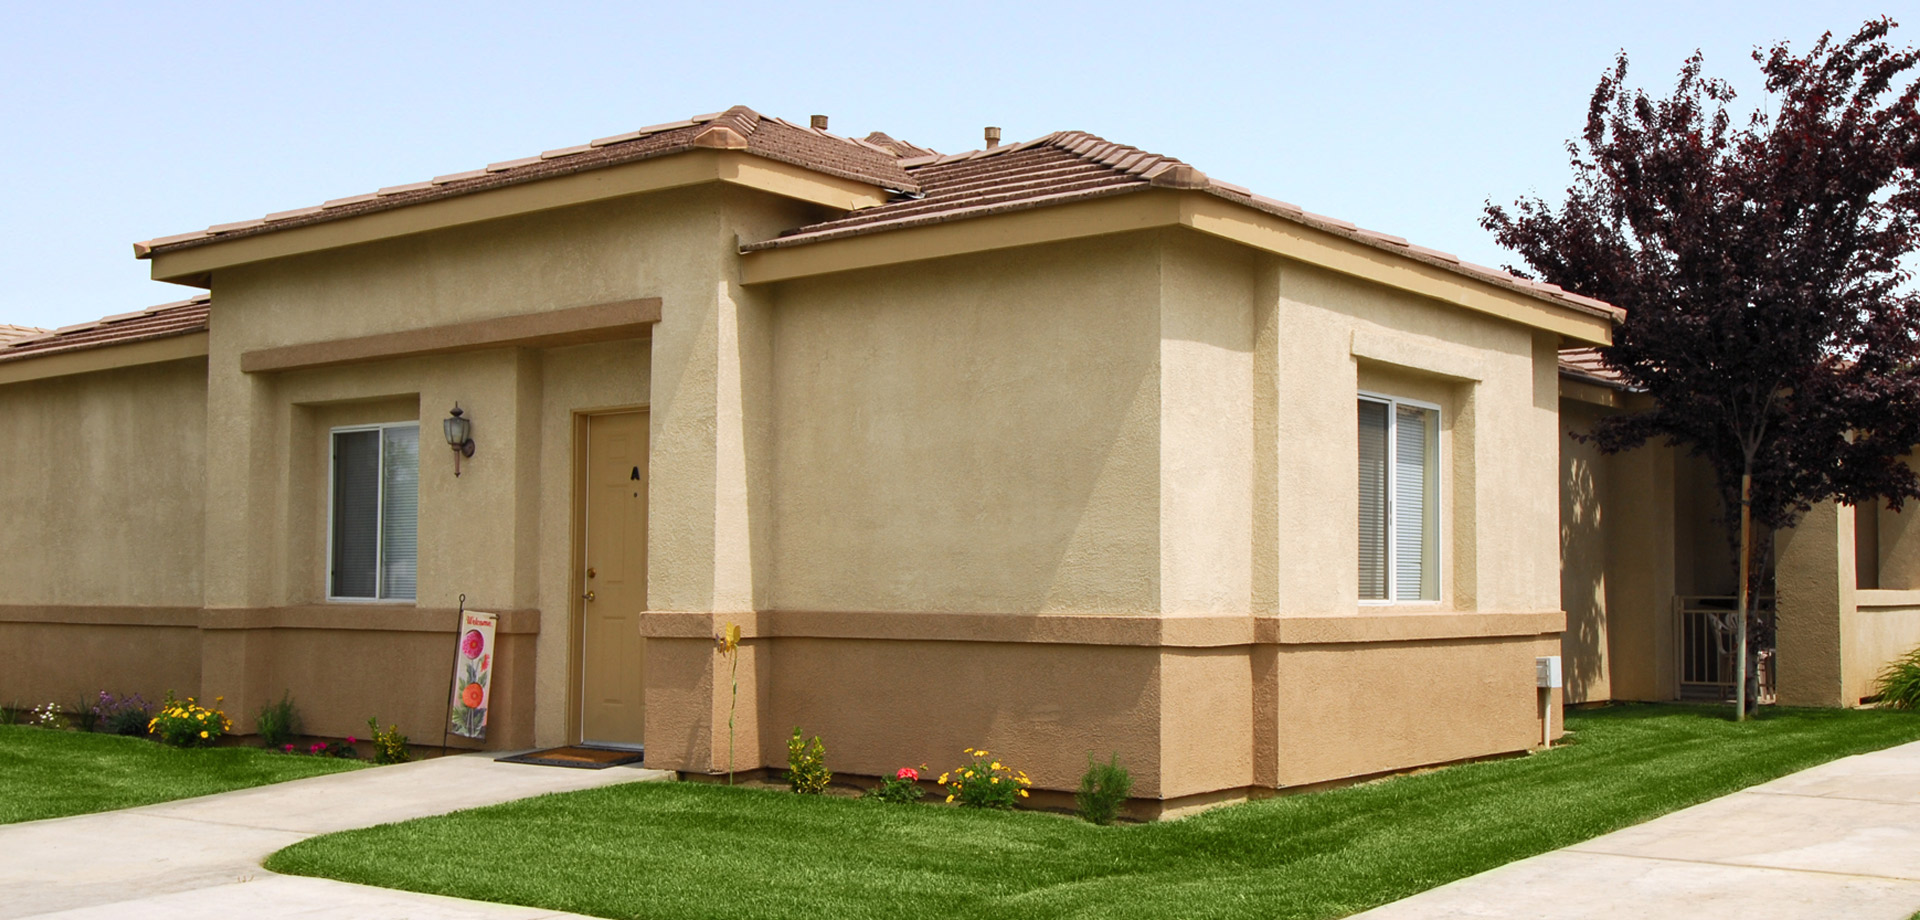 liberty park apartments - apartment homes in bakersfield, ca